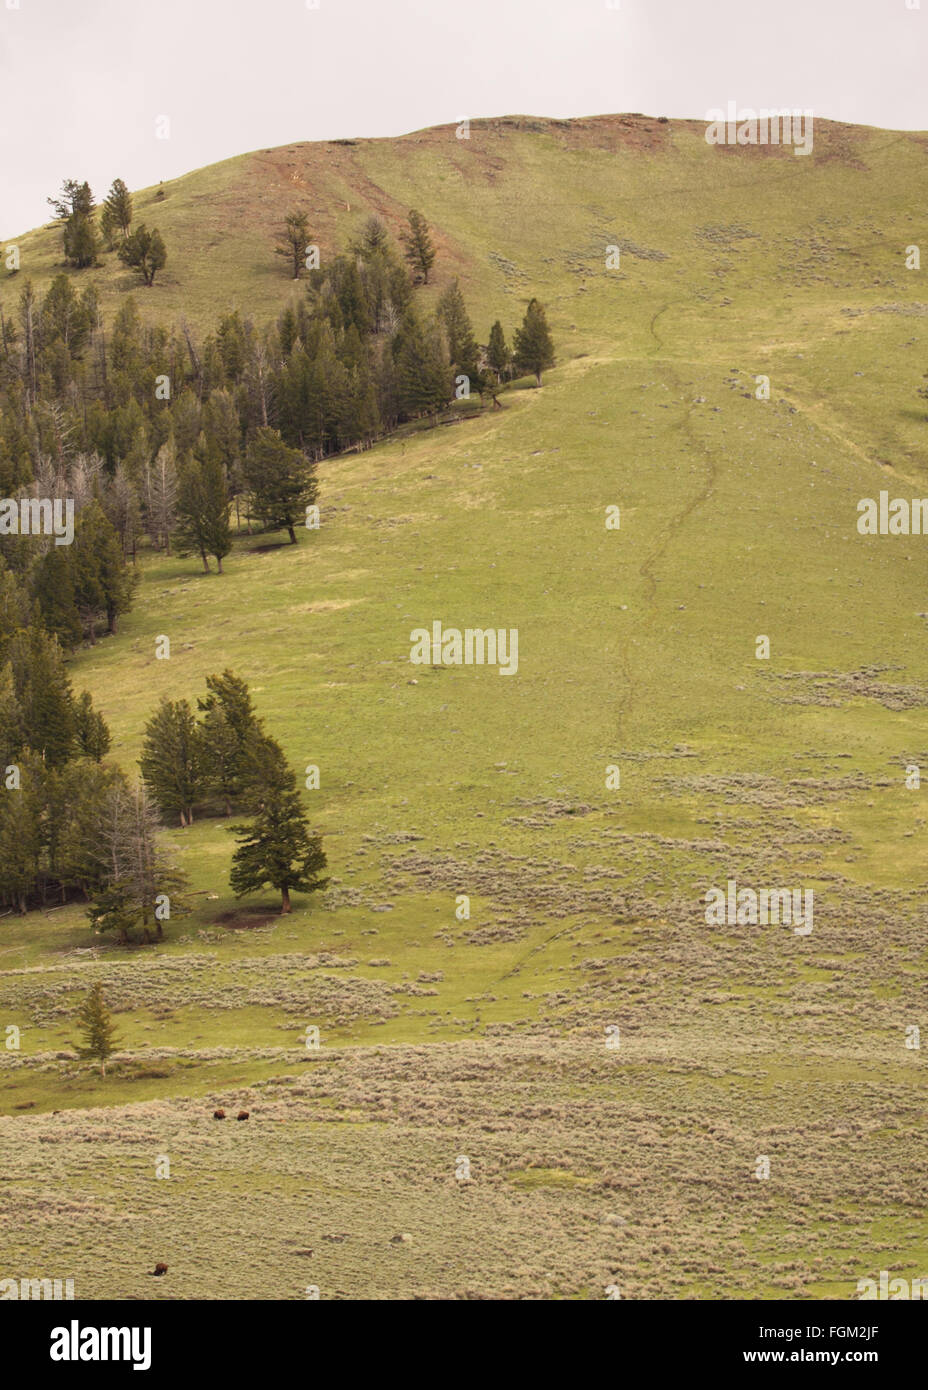 The trail of American Bison down a lonely mountain. - Stock Image